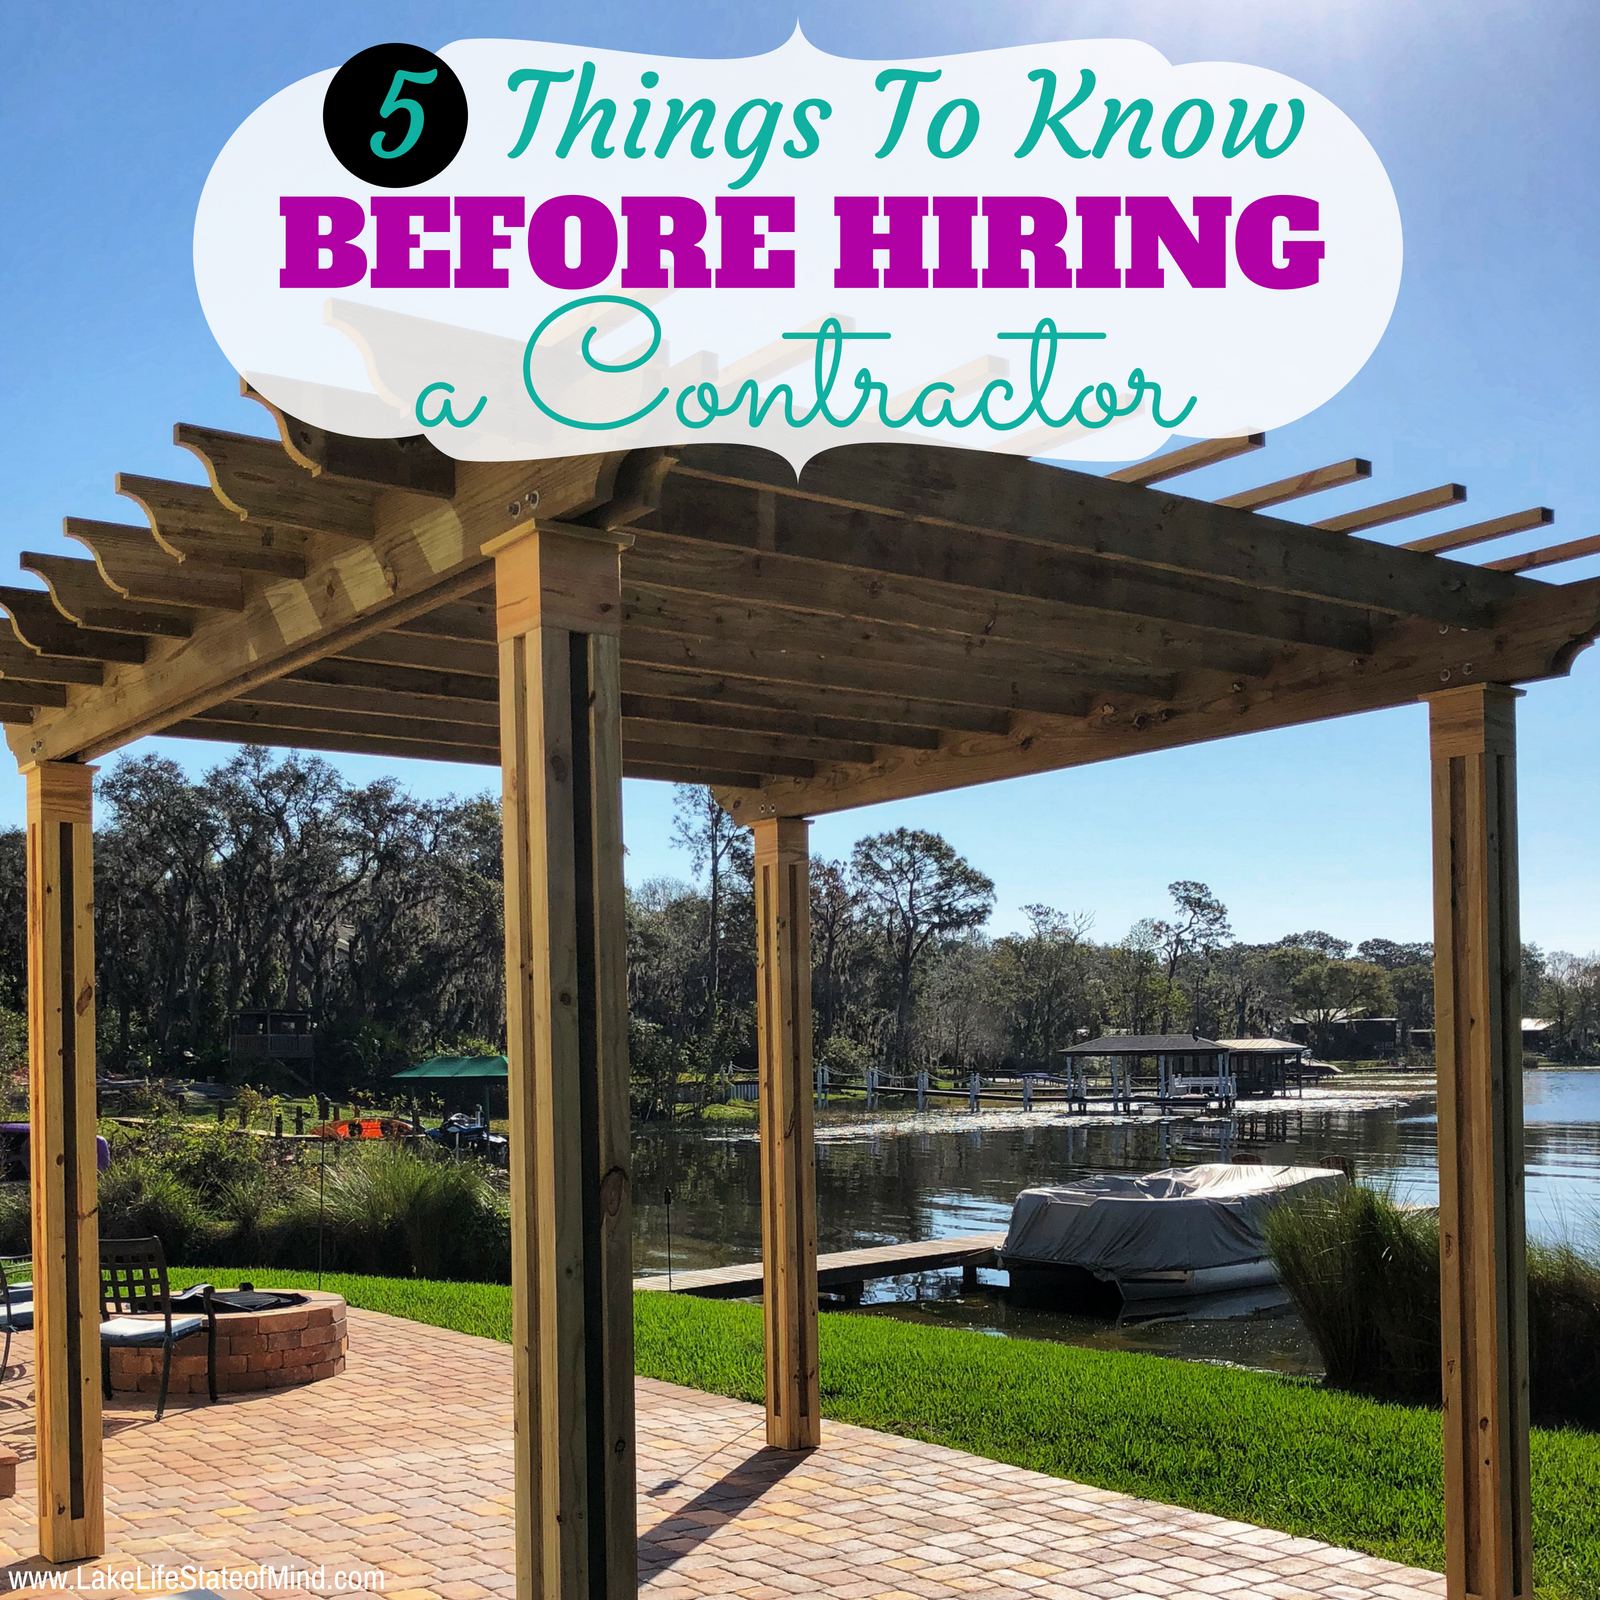 Five Things You Must Know When Hiring a Contractor